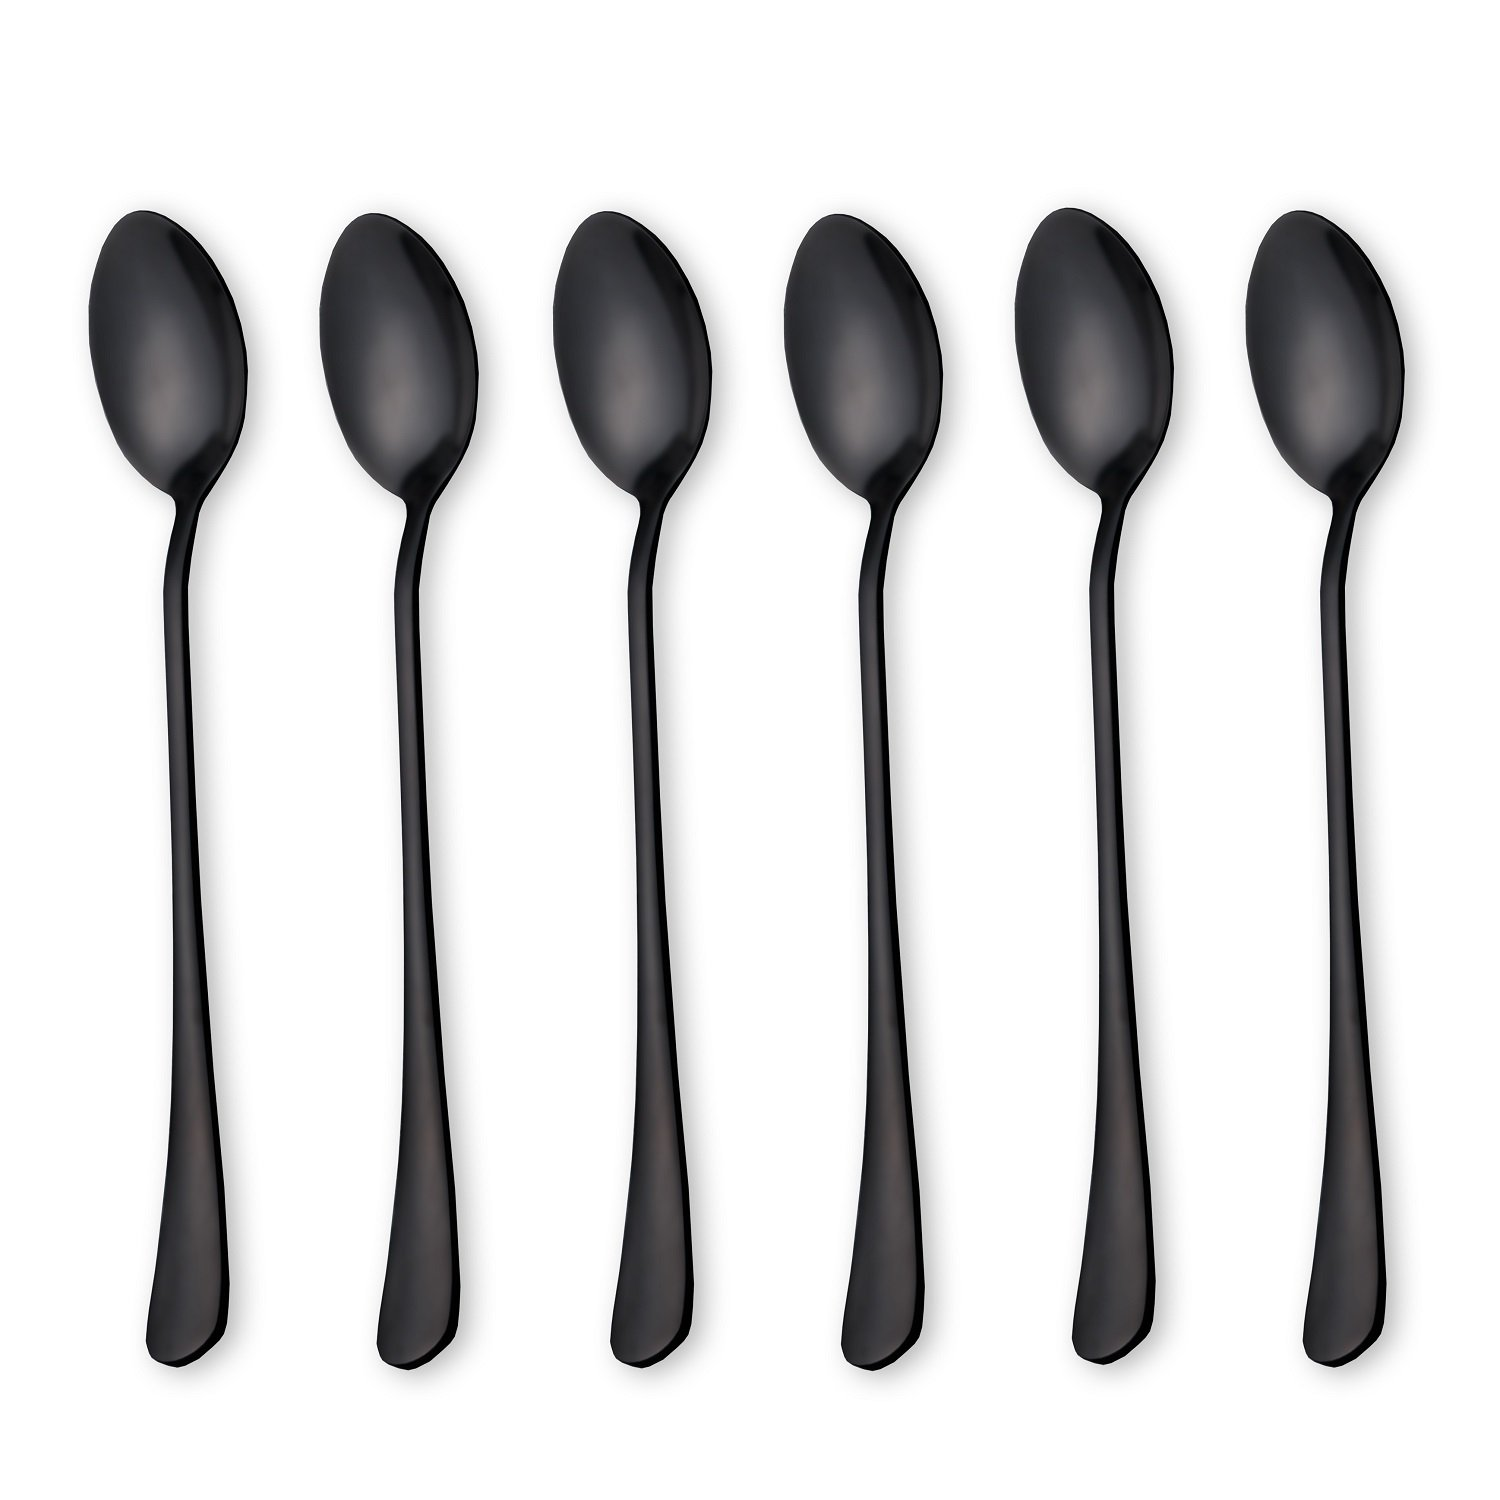 6-Pieces Stainless Steel Long Handle Ice Tea Coffee Mixing Spoons, Icecream Spoon, Espresso Deluxe Spoon, Bar spoon, 7.62-inch(Black)